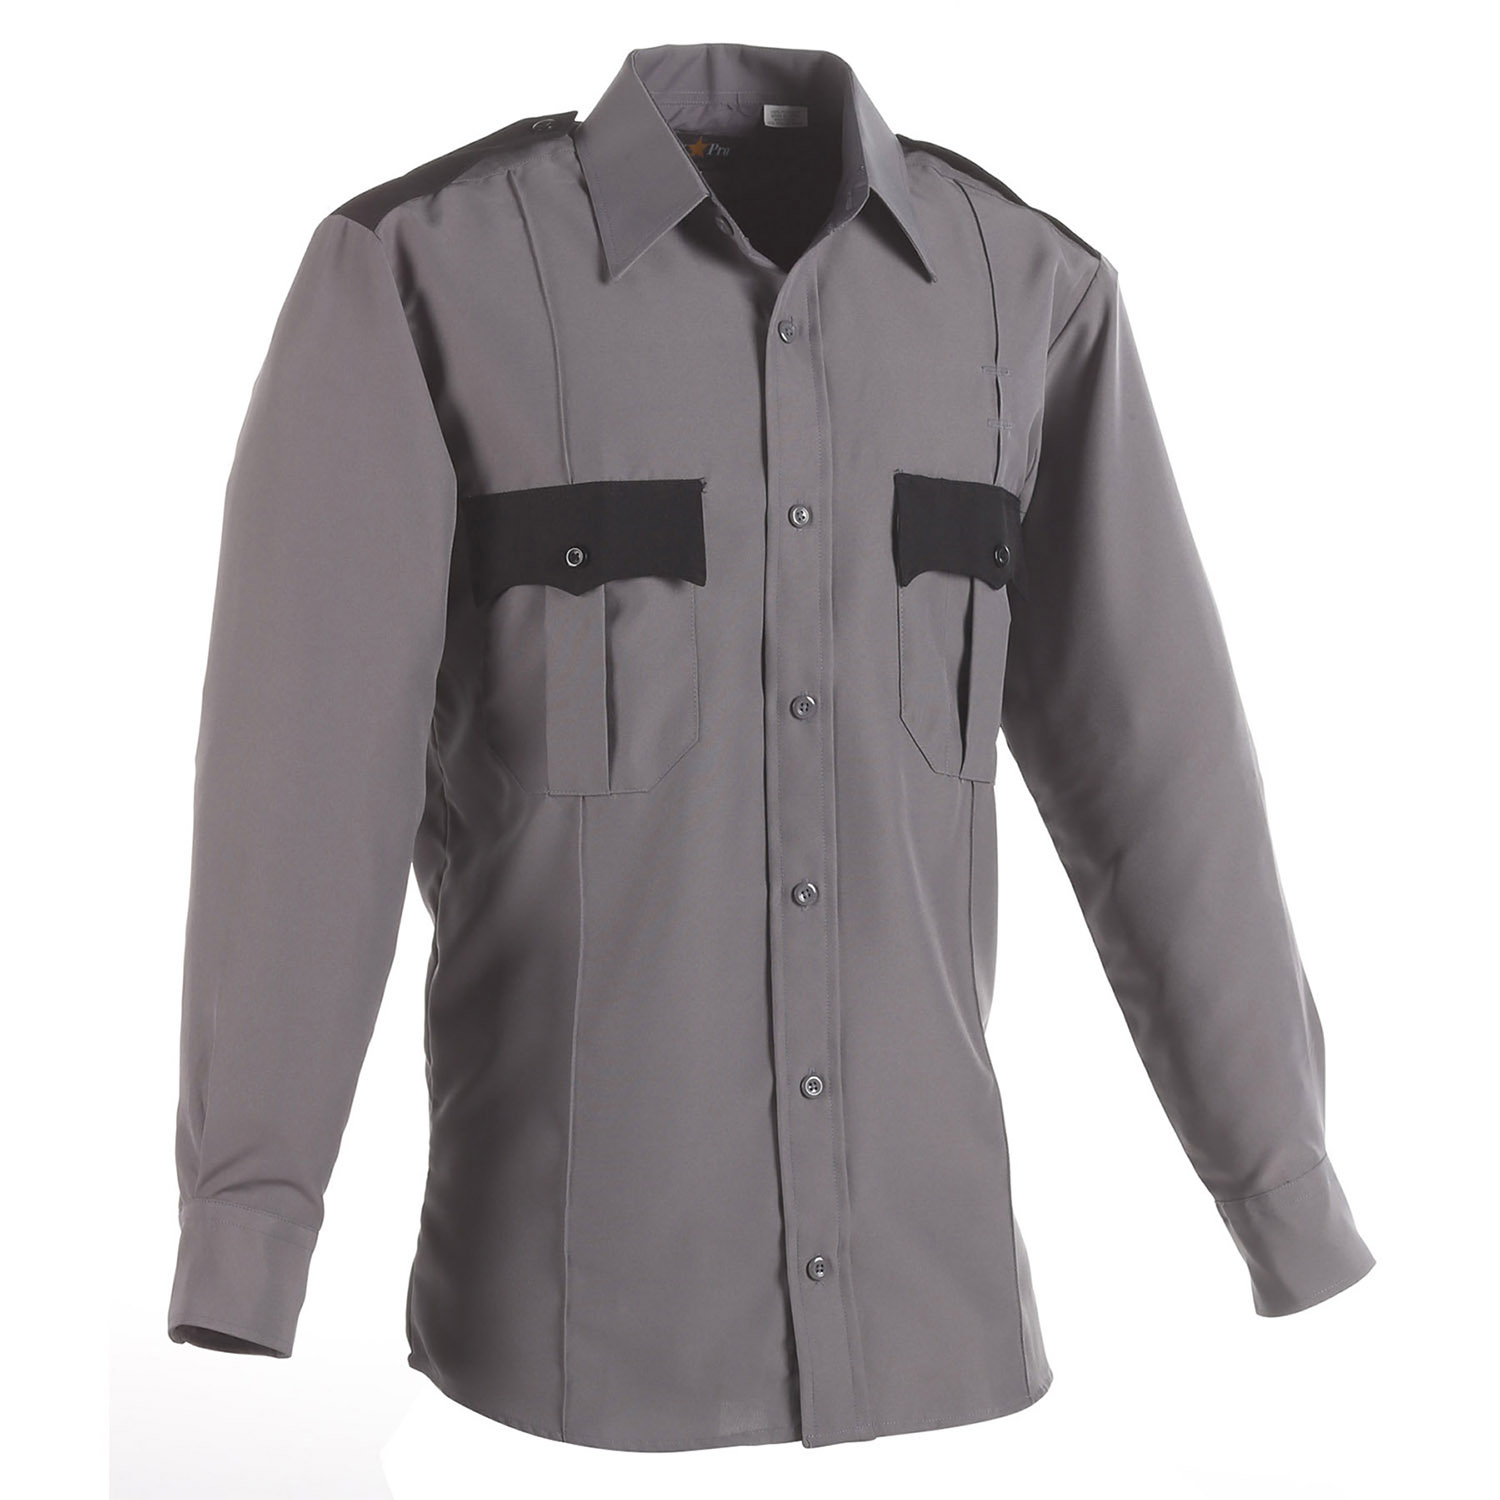 LawPro 100% Polyester TwoTone Long Sleeve Shirt